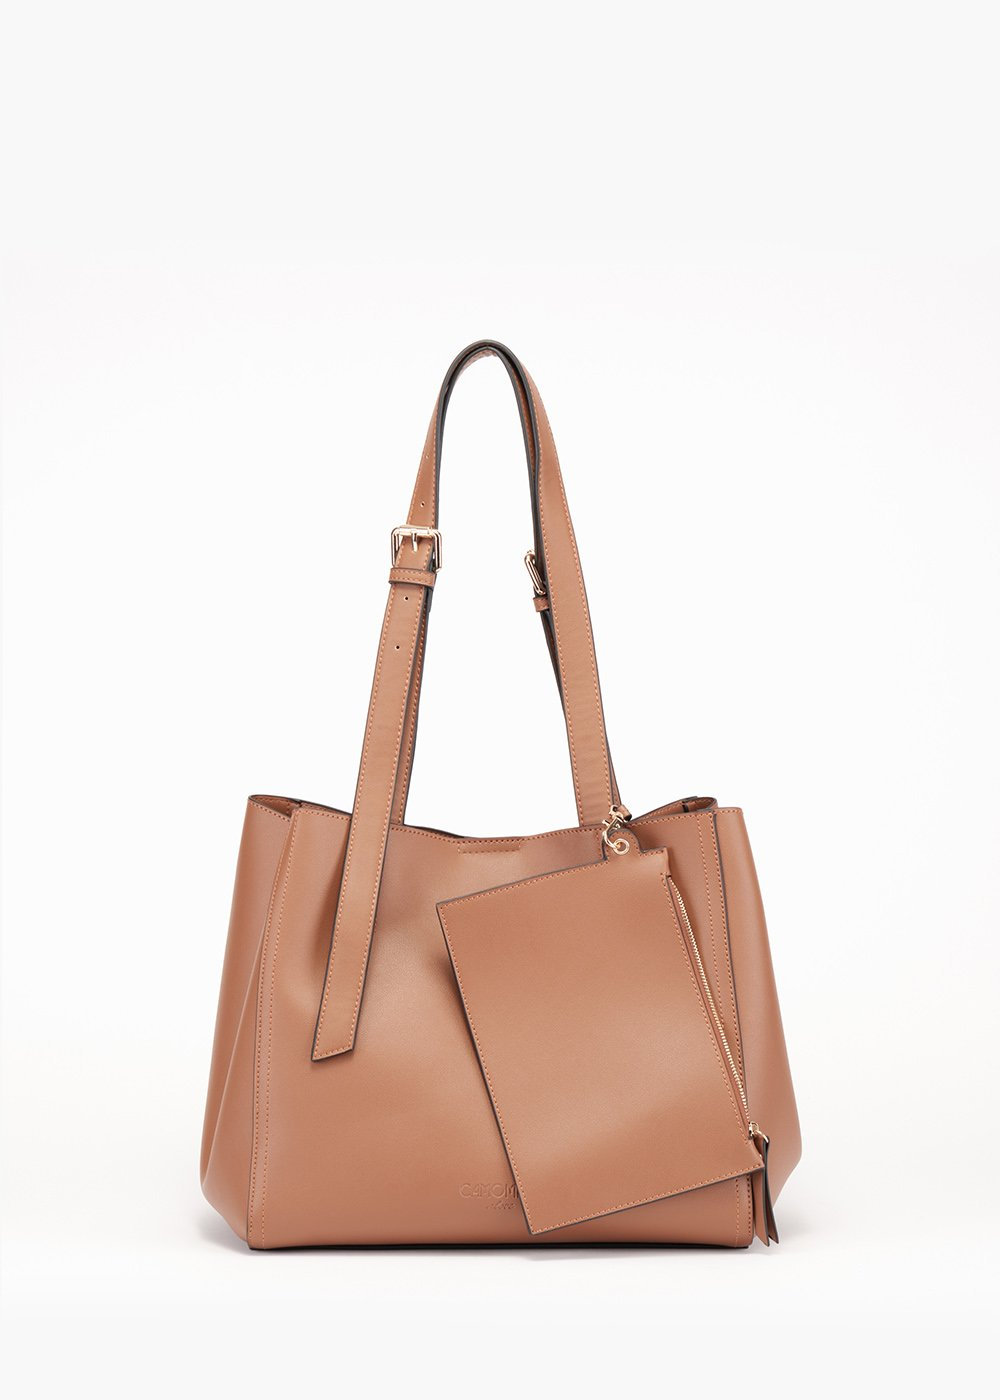 Beren bag in unlined eco leather - Sughero - Woman